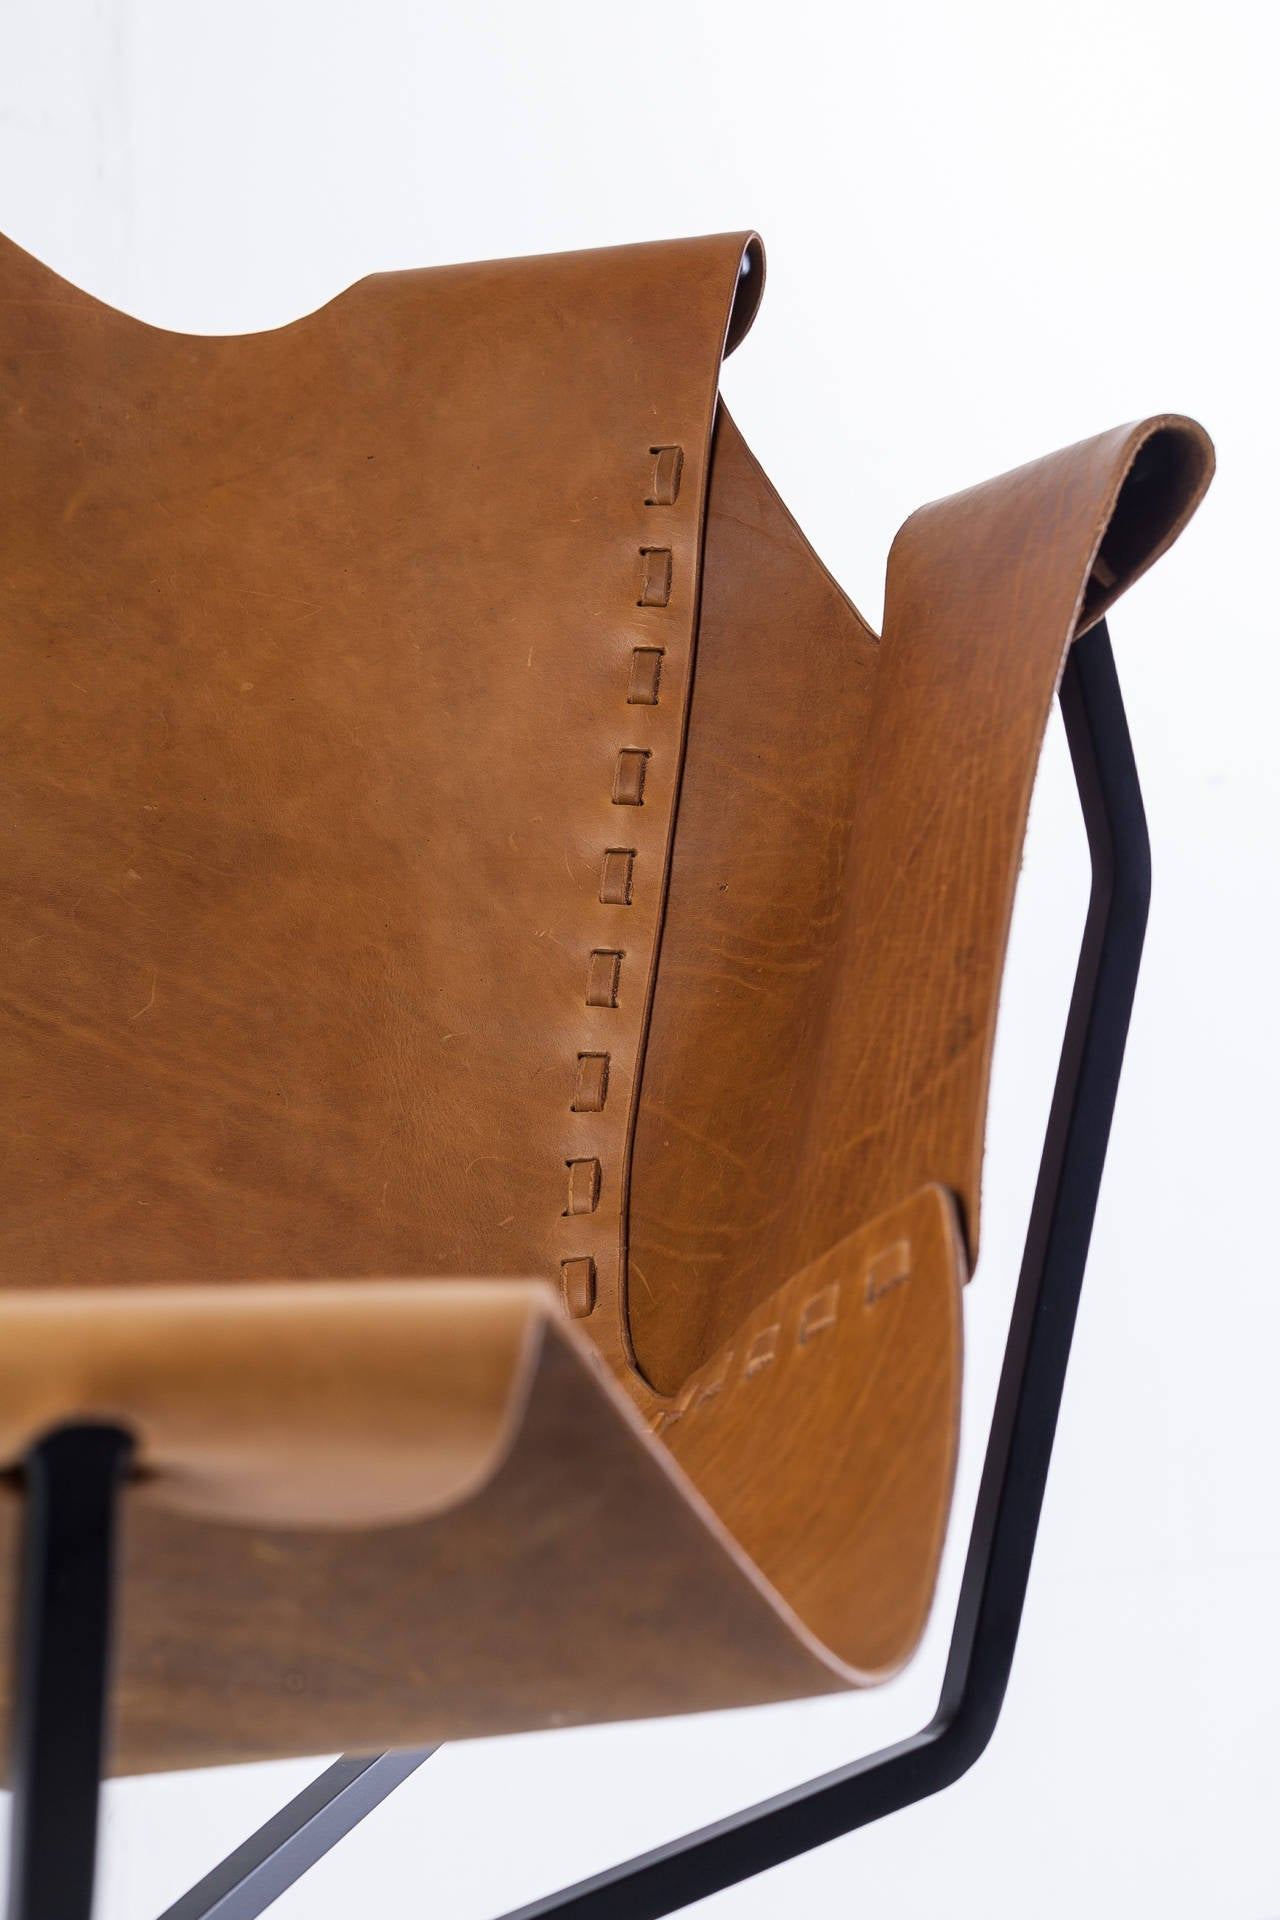 Leather Special Edition Dan Wenger Sling Chair, USA, 1970s